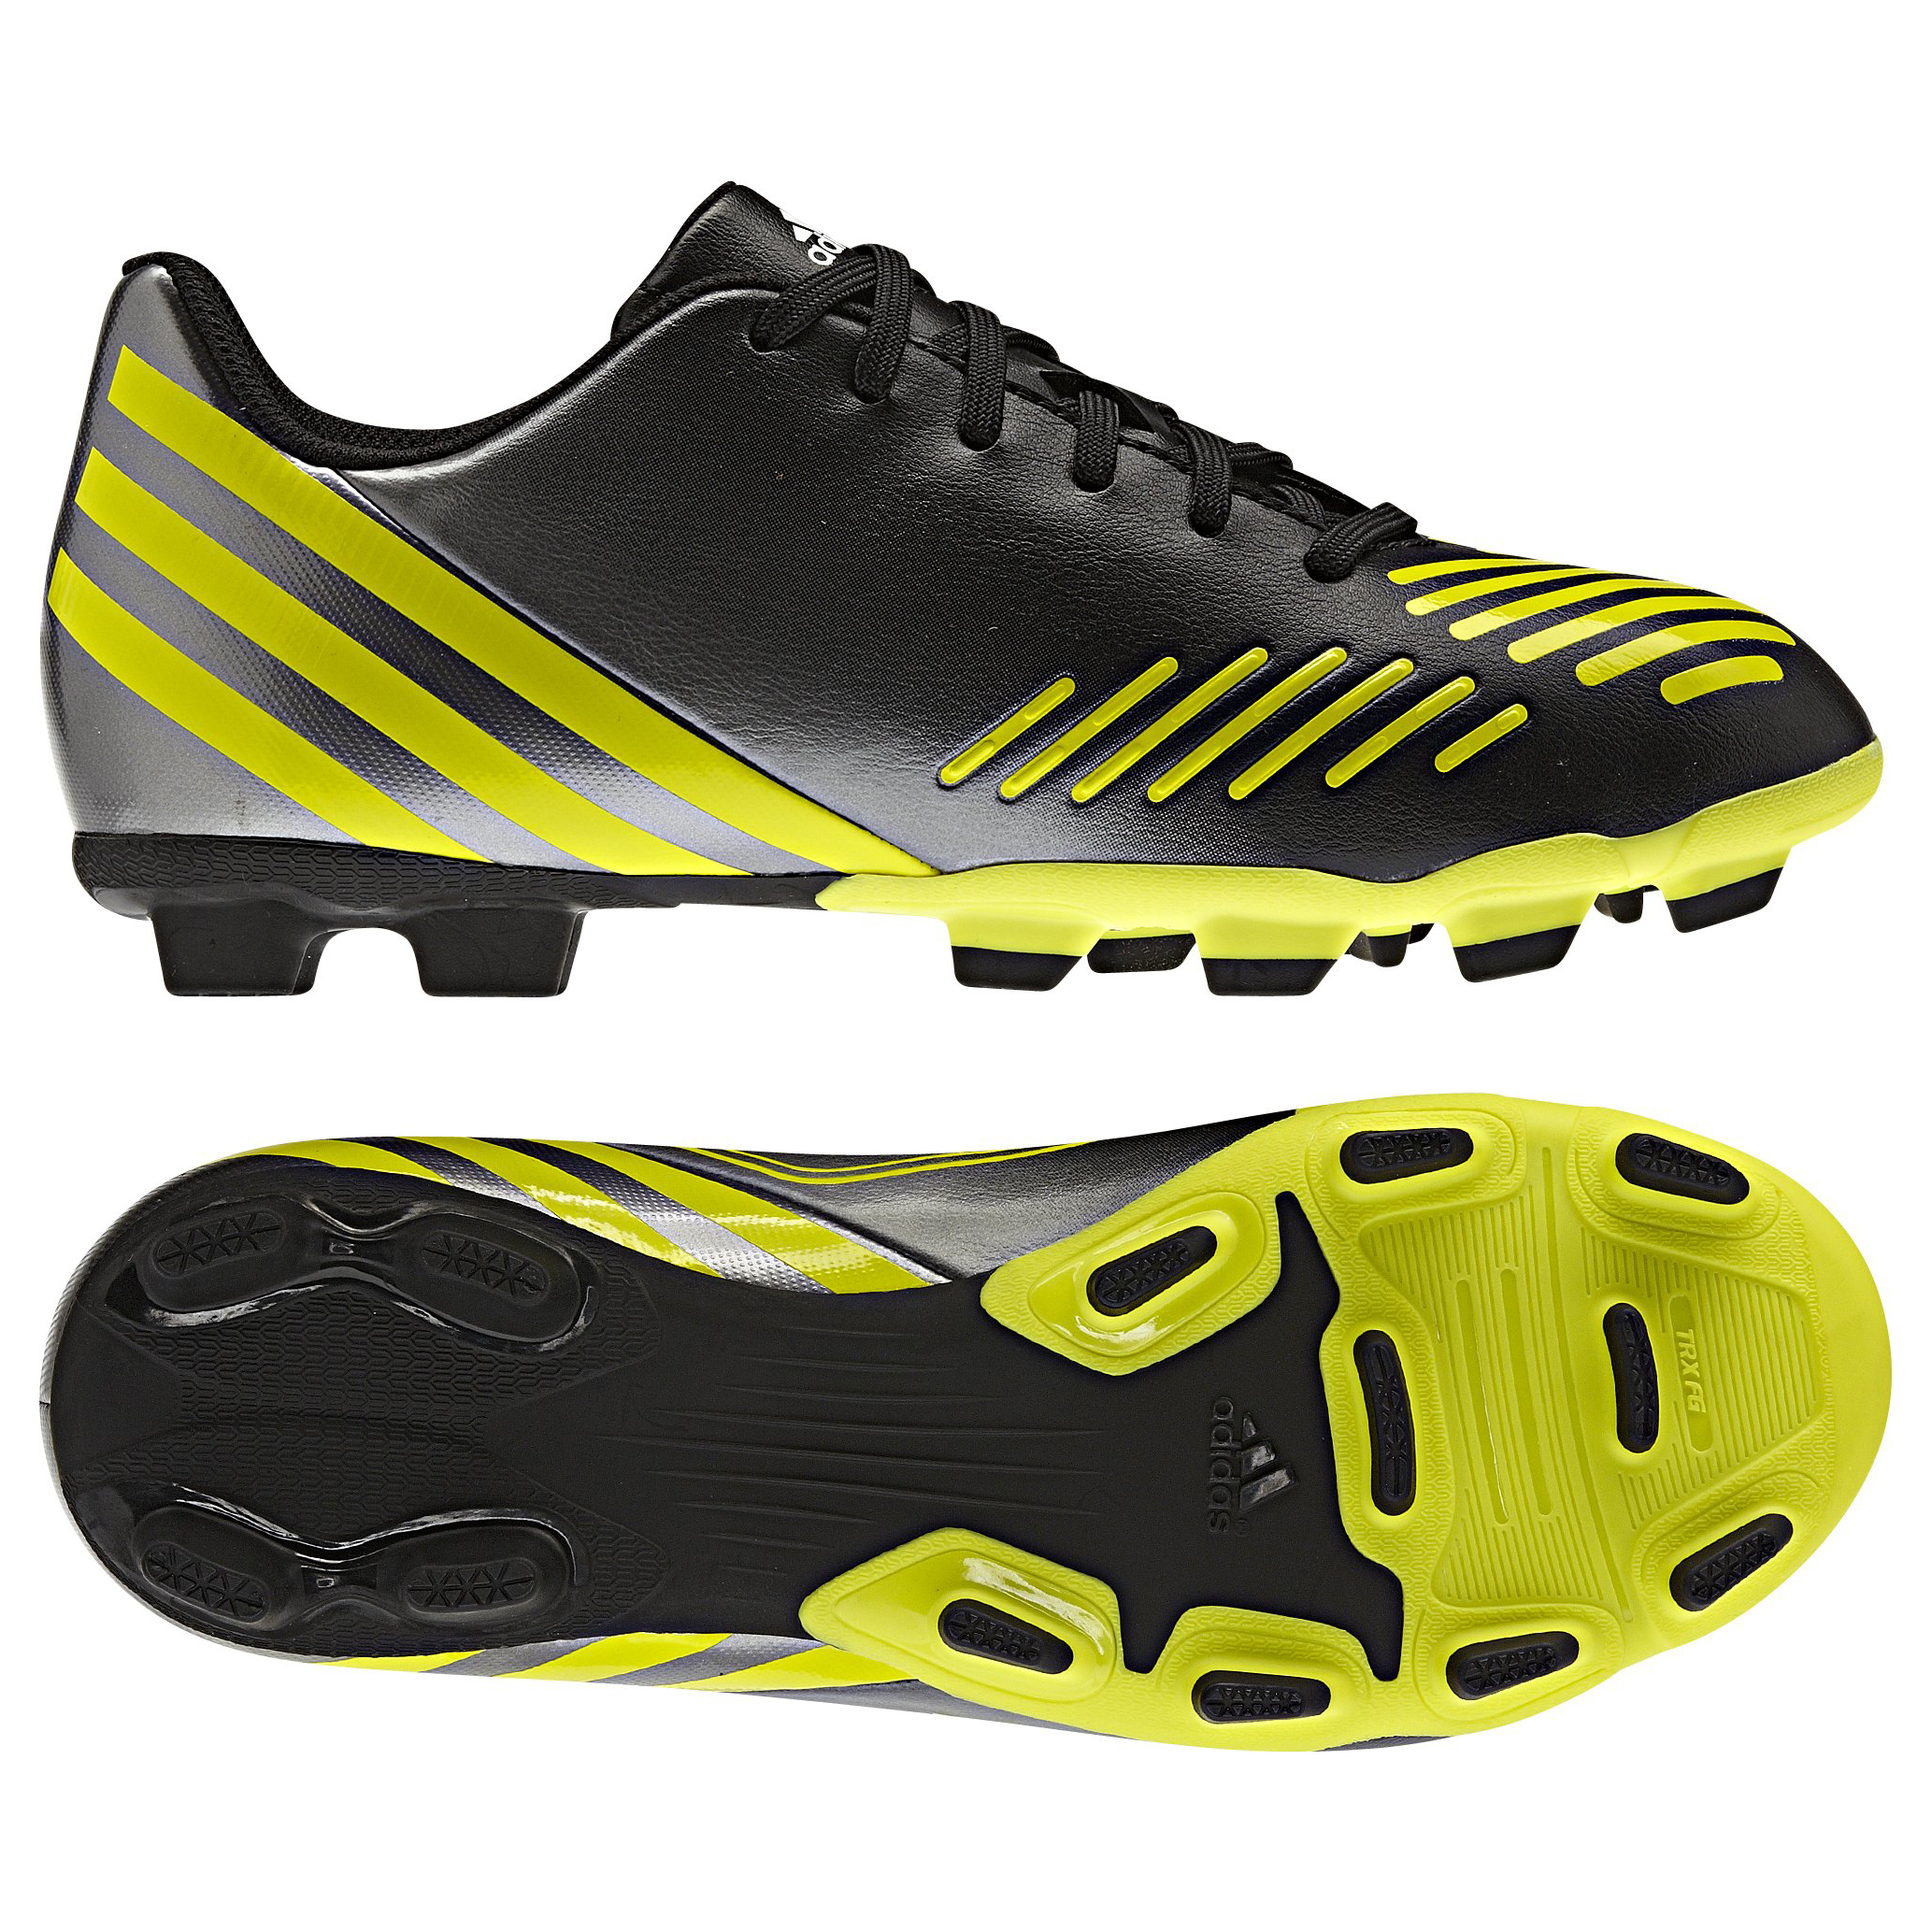 Adidas Predito LZ TRX Firm Ground Football Boots - Black/Lab Lime/Neo Iron Met - Kids